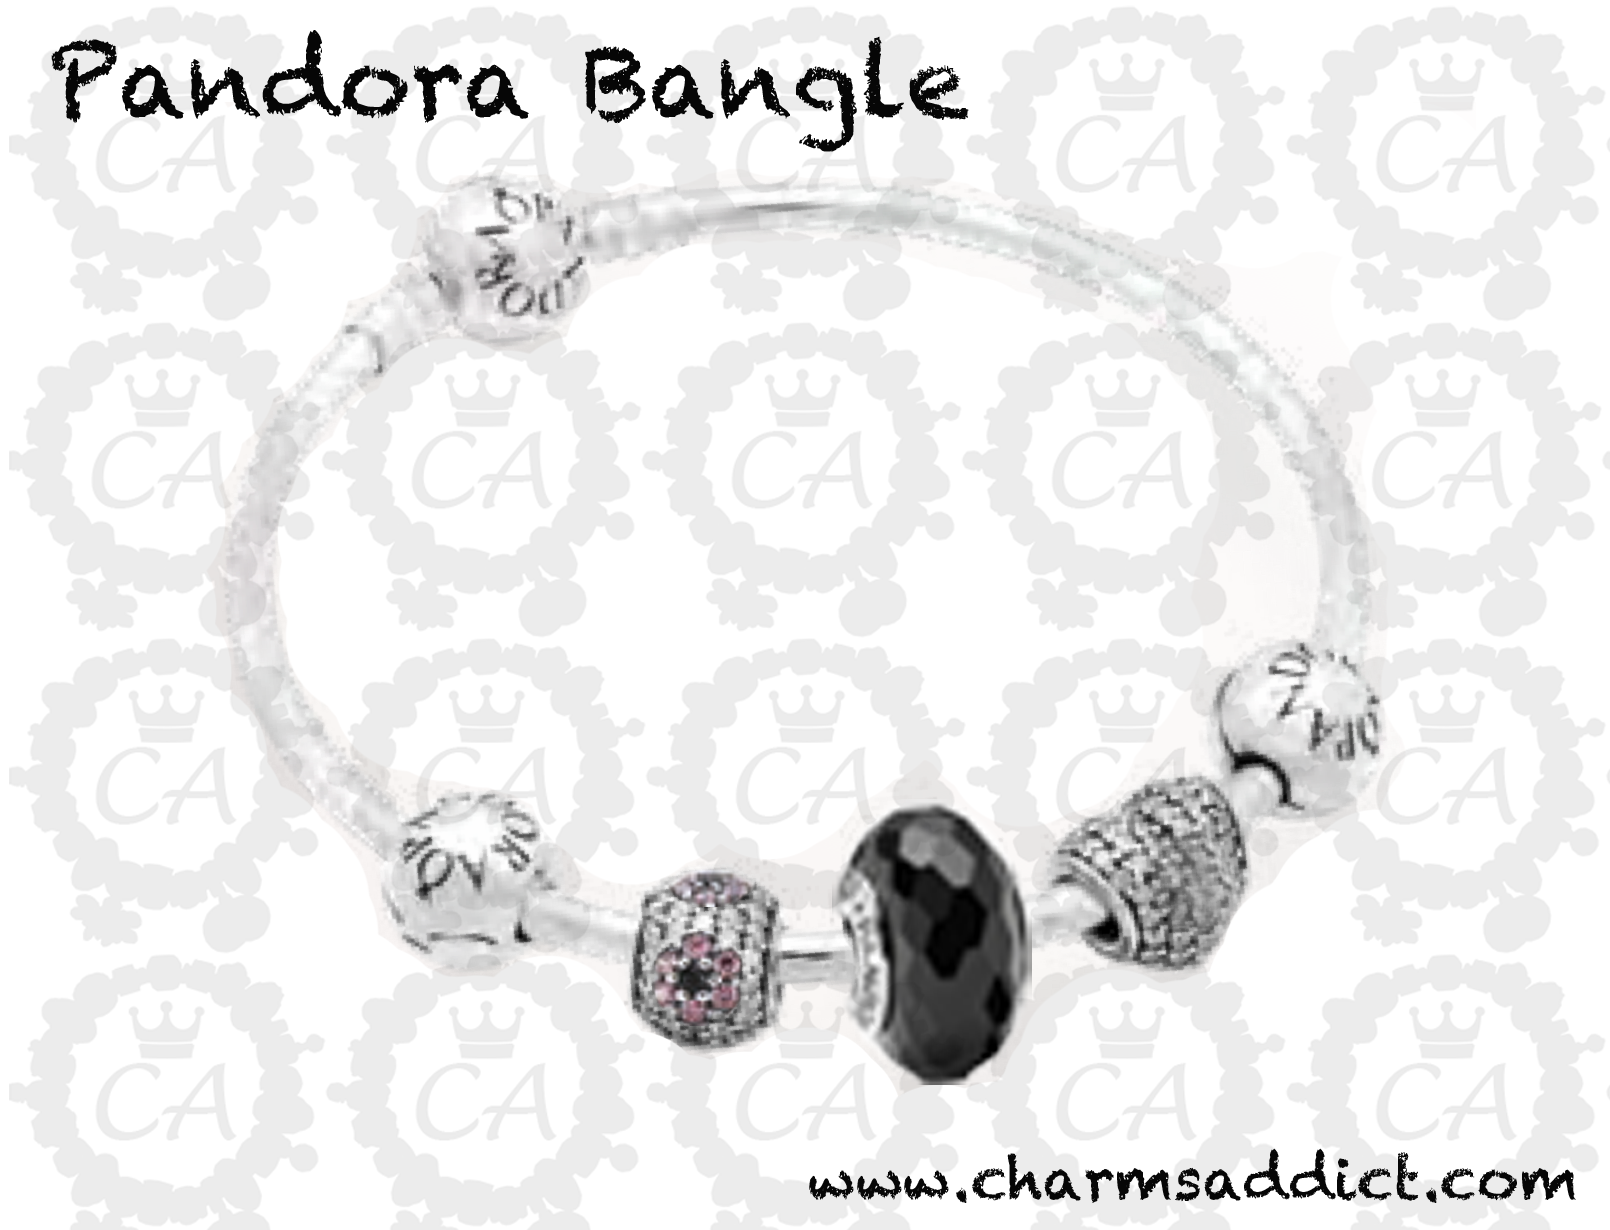 sweater spicing rose with charms bangles two tone perfect sterling for a in wintery and silver pandora up look adorn pin wrist stunners bangle your